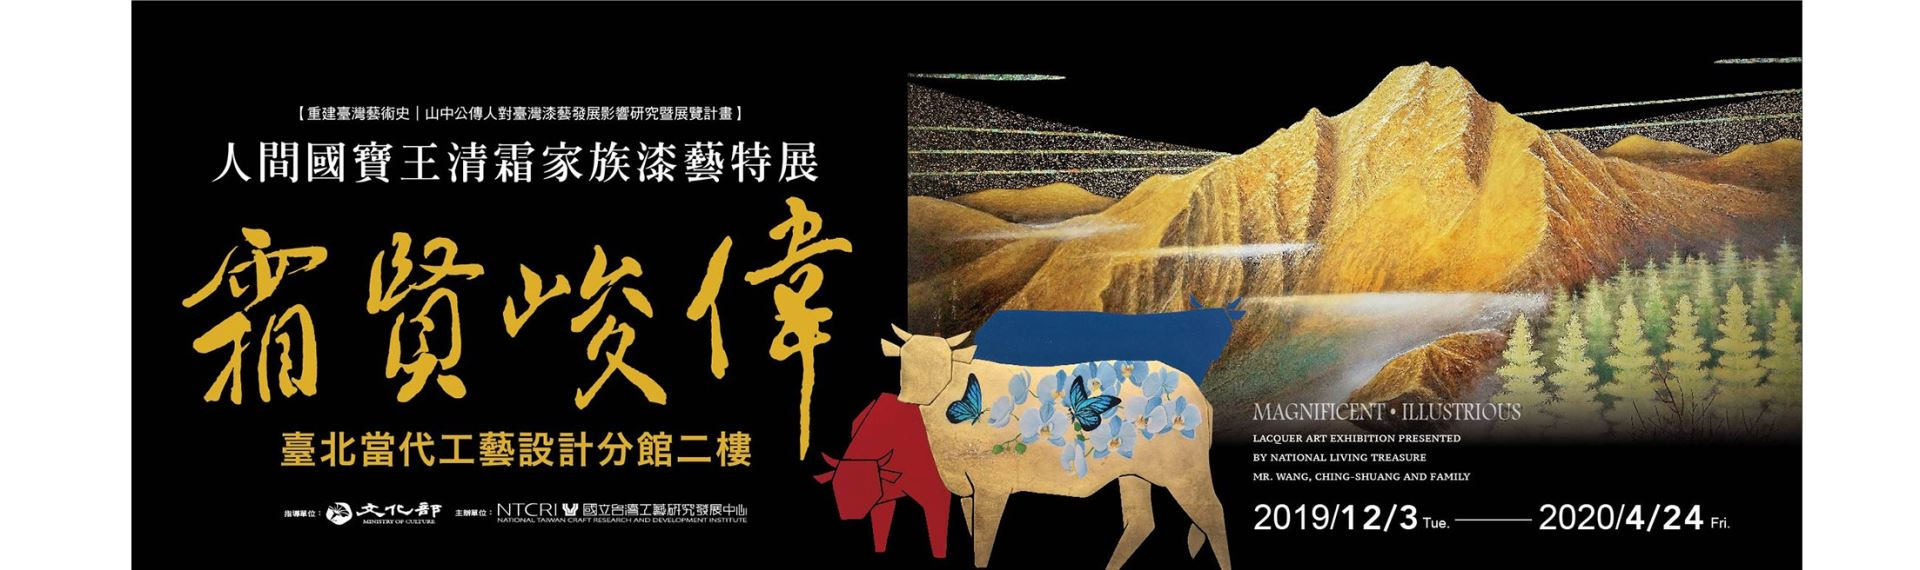 MAGNIFICENT • ILLUSTRIOUS LACQUER ART EXHIBITION PRESENTED BY NATIONAL LIVING TREASURE MR. WANG, CHING-SHUANG AND FAMILY[另開新視窗]